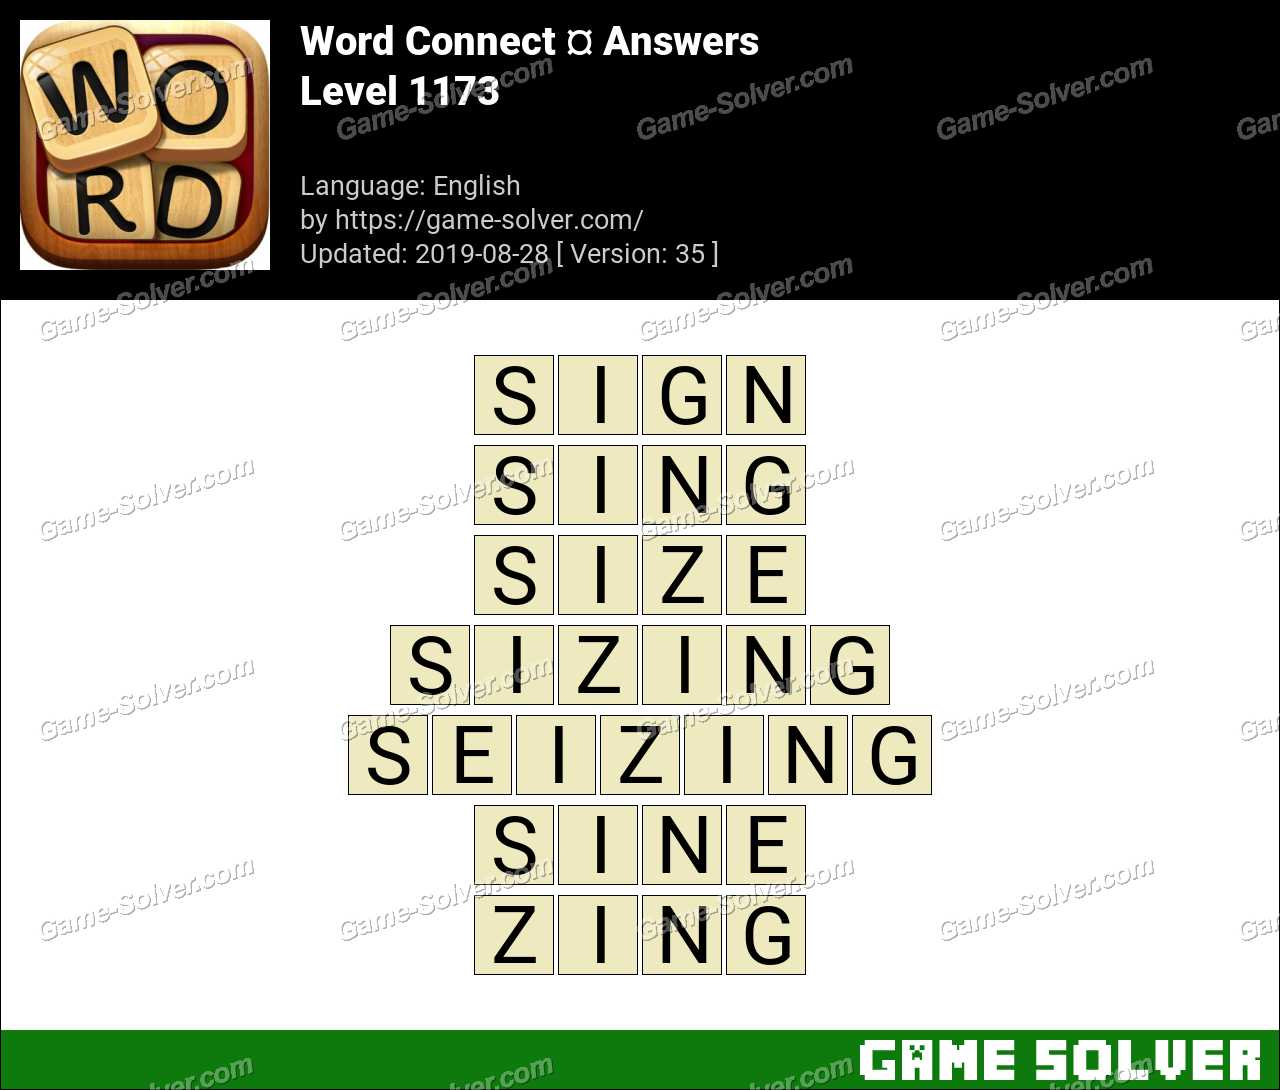 Word Connect Level 1173 Answers